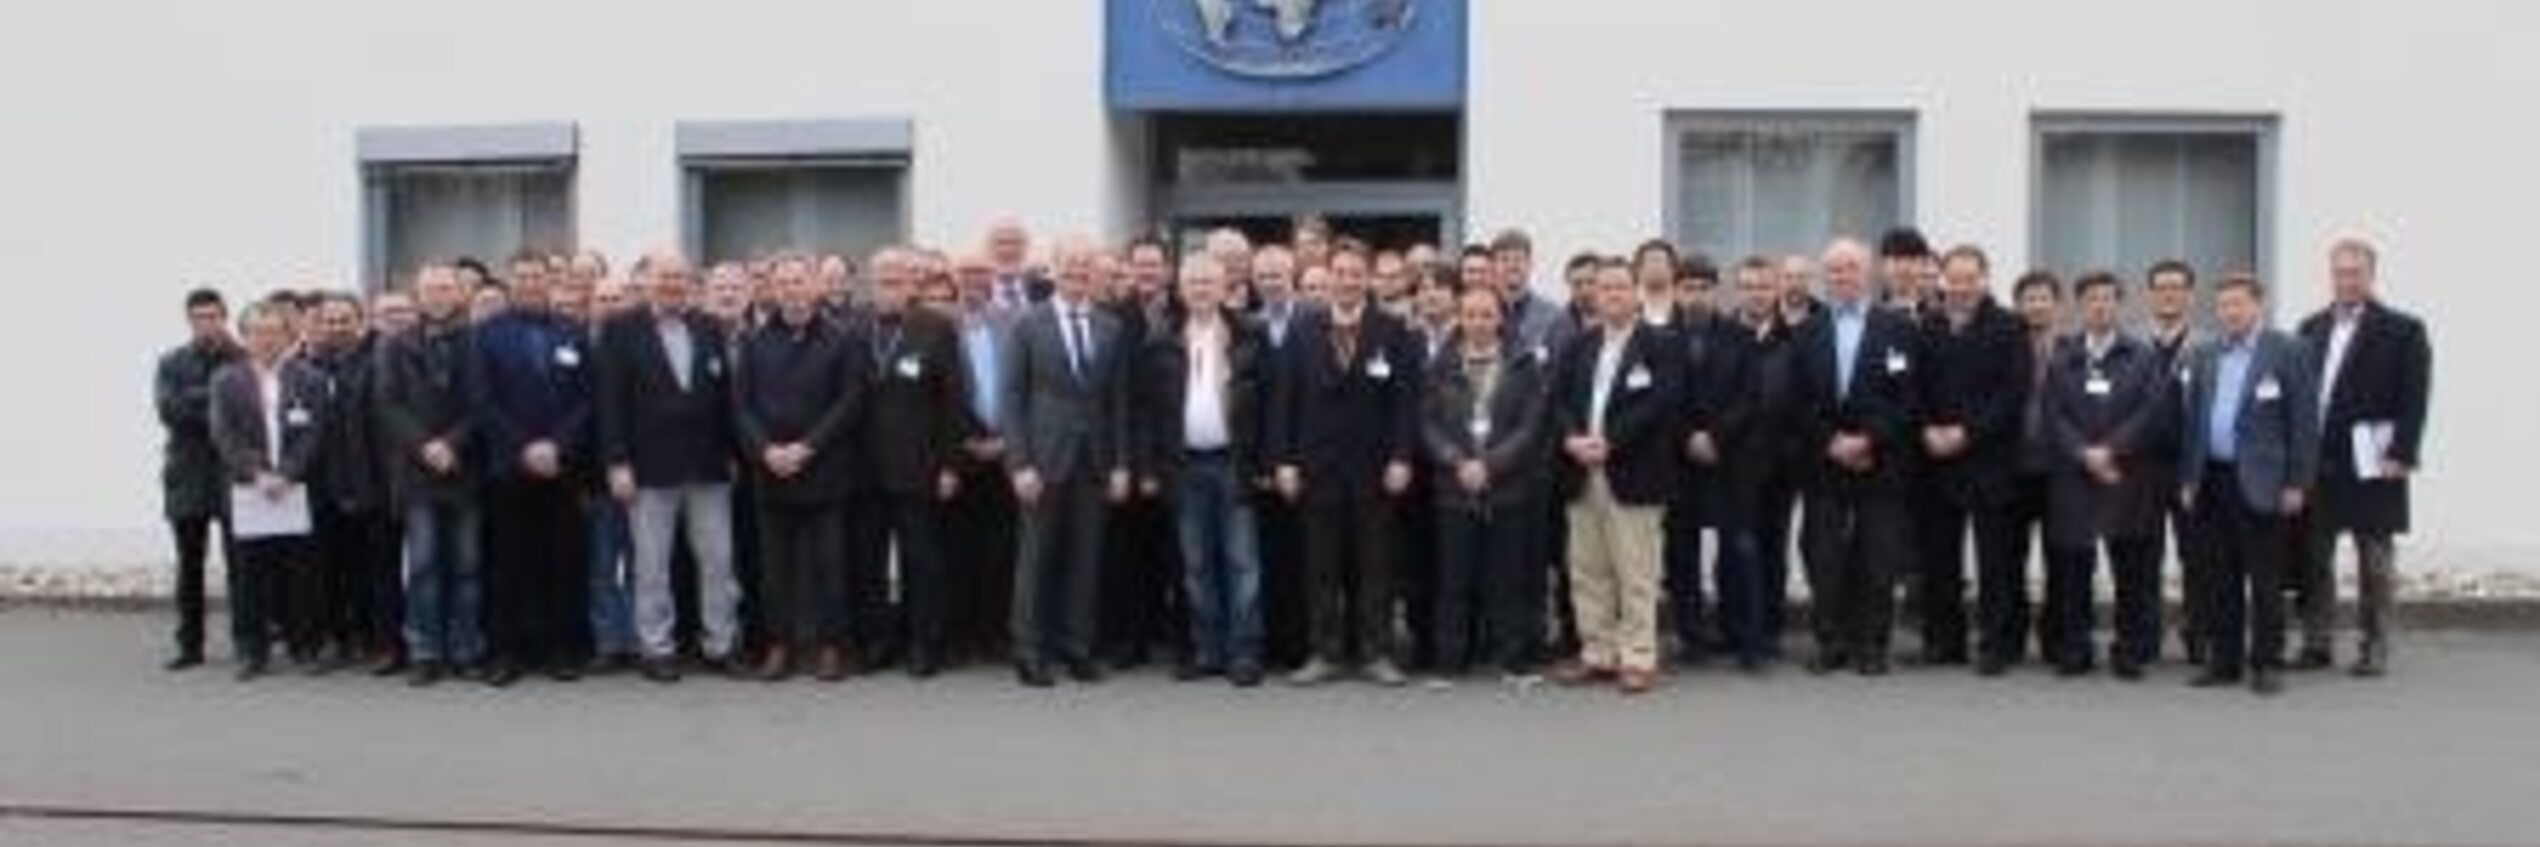 Diehl Metall Welcomes IWCC Guests